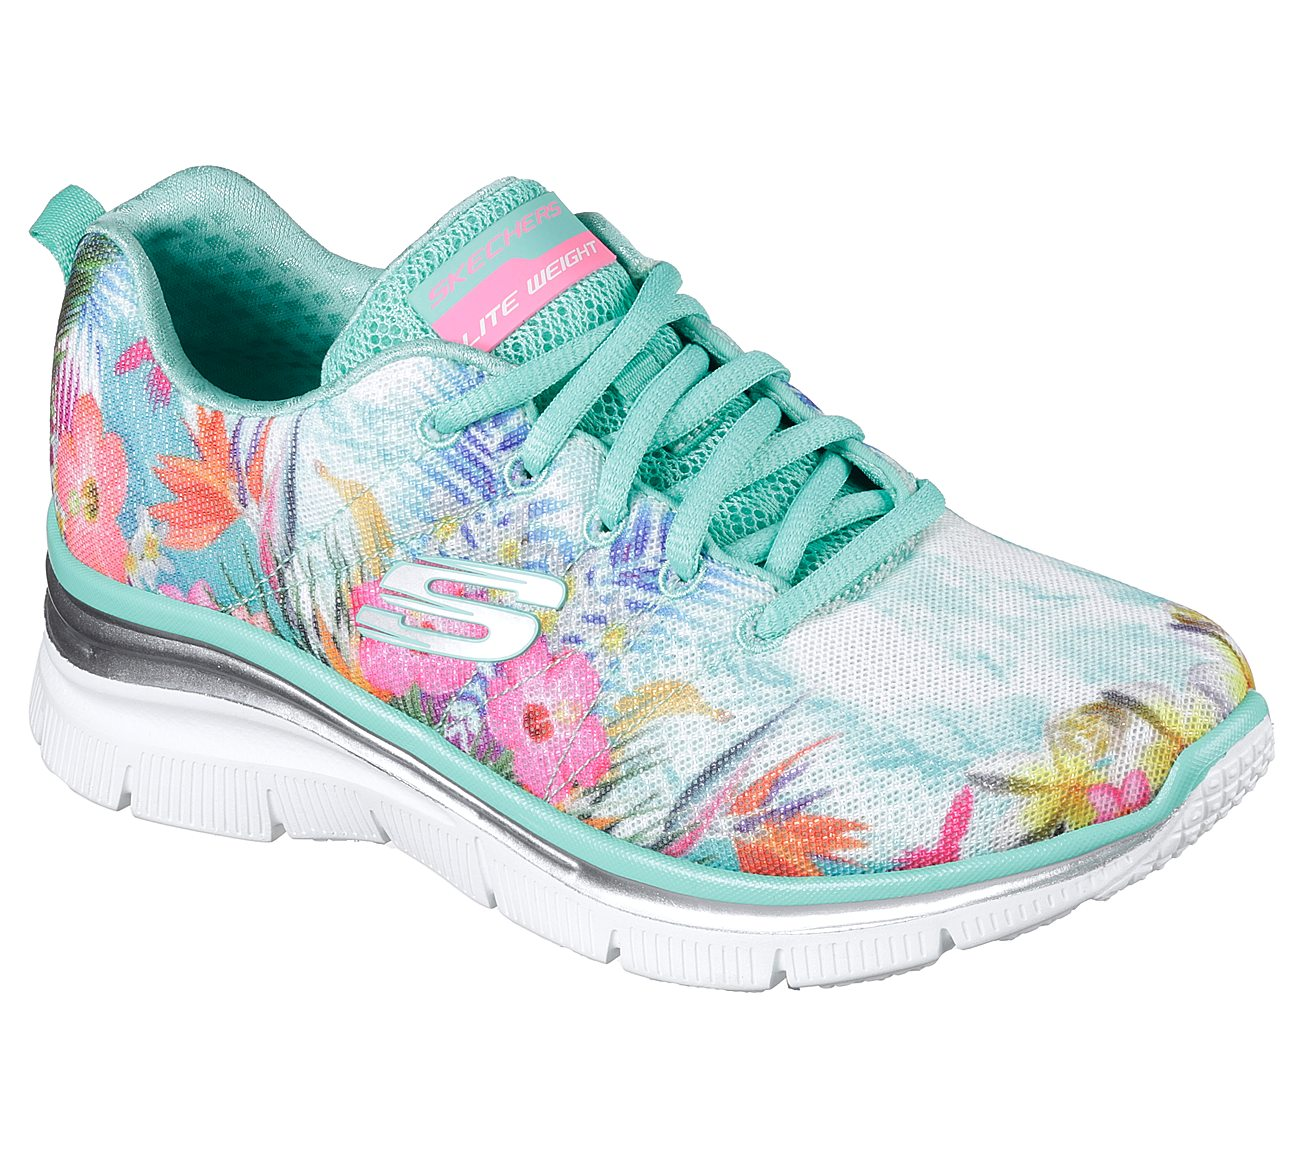 browse cheap online Skechers Tropical Print Sneaker Wedges - Spring Essential cheap price quality original BoM1xb